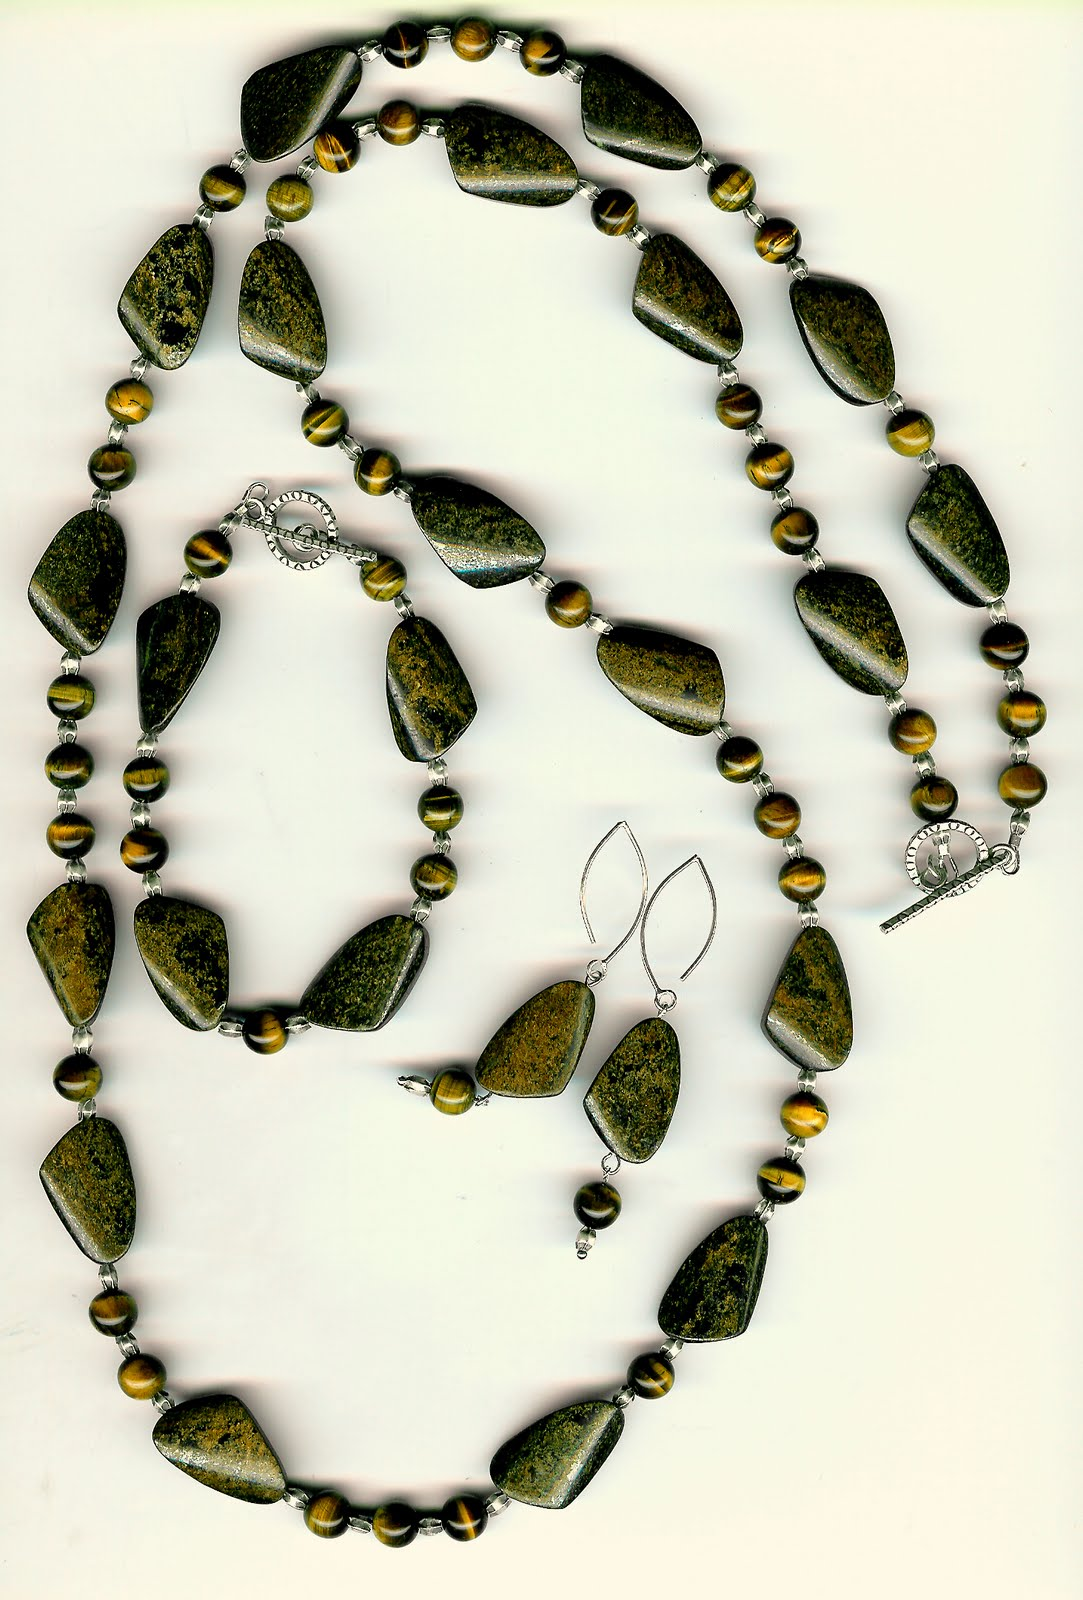 204. Bronzite, Tiger's Eye with Karen Hill Thai Sterling Siver with Bracelet + Earrings